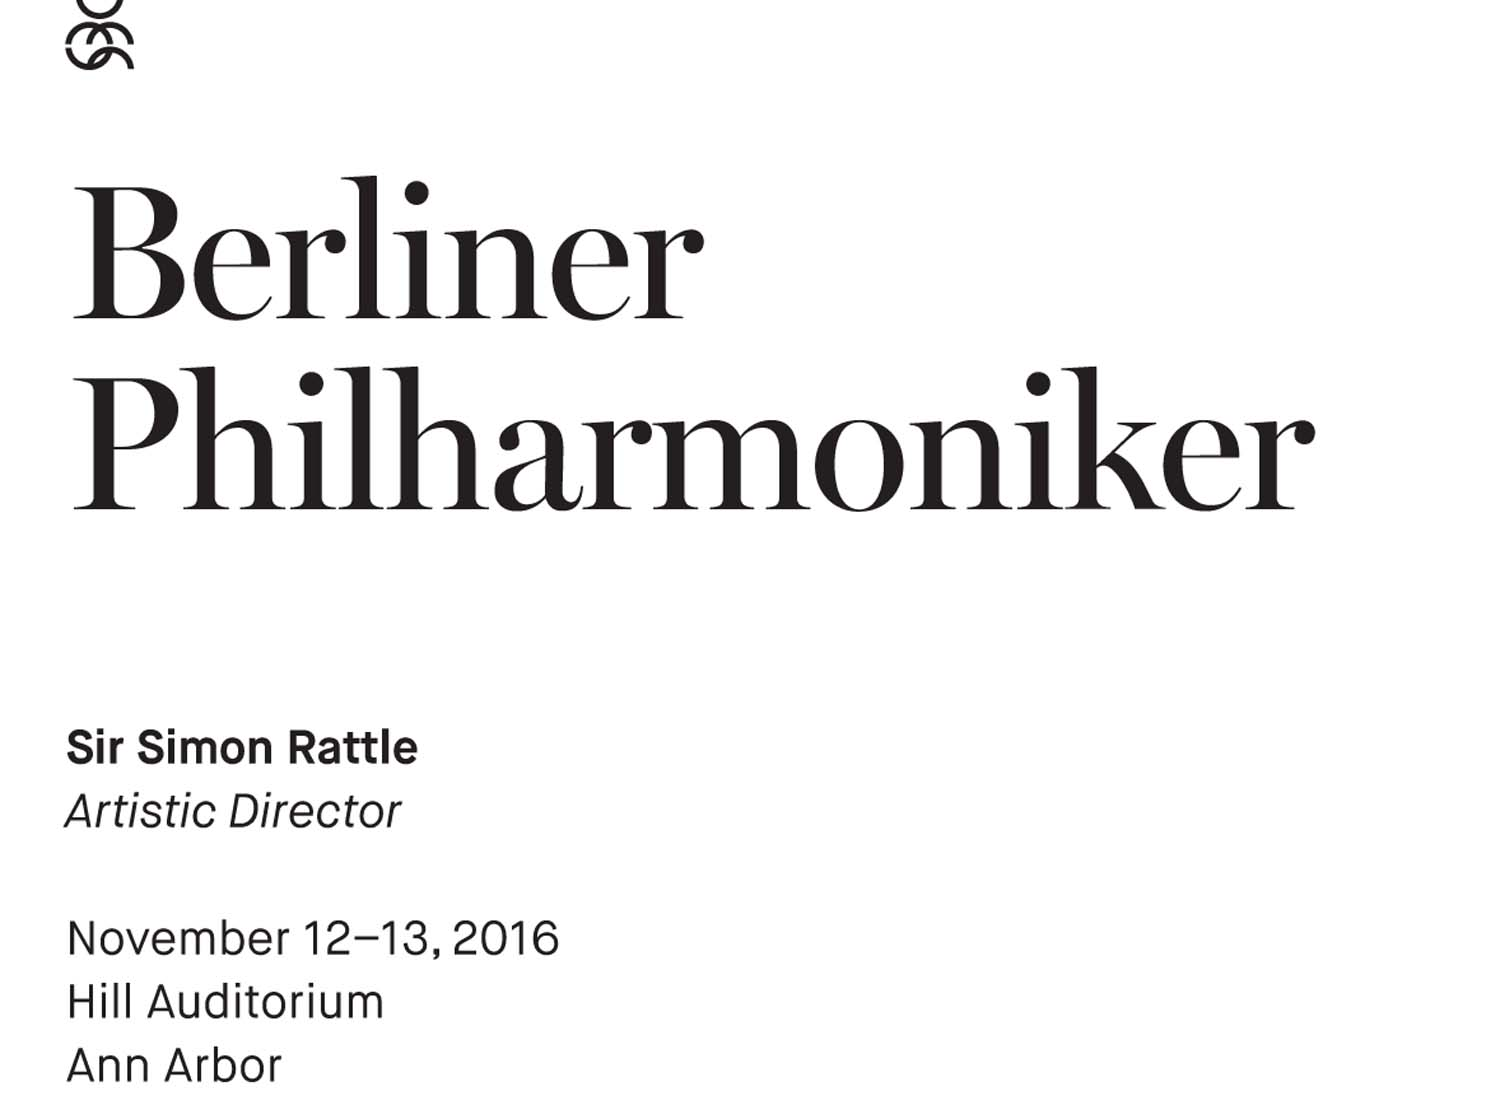 UMS Concert Program, November 12, 2016 - November 13, 2016 - Berliner Philharmoniker image